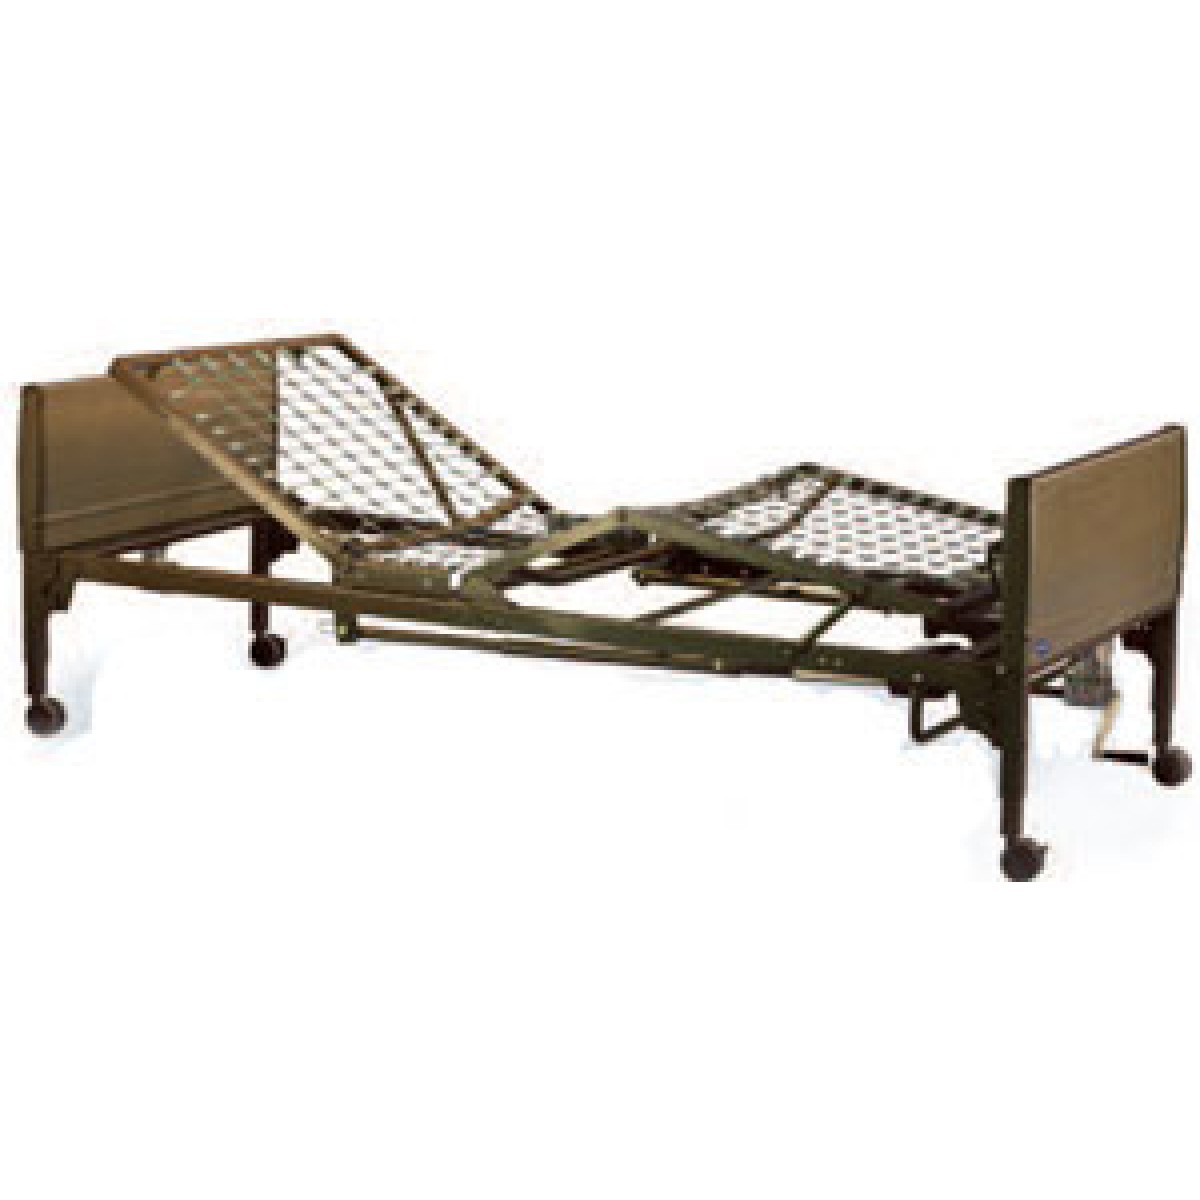 Invacare Electric Hospital Bed For Sale